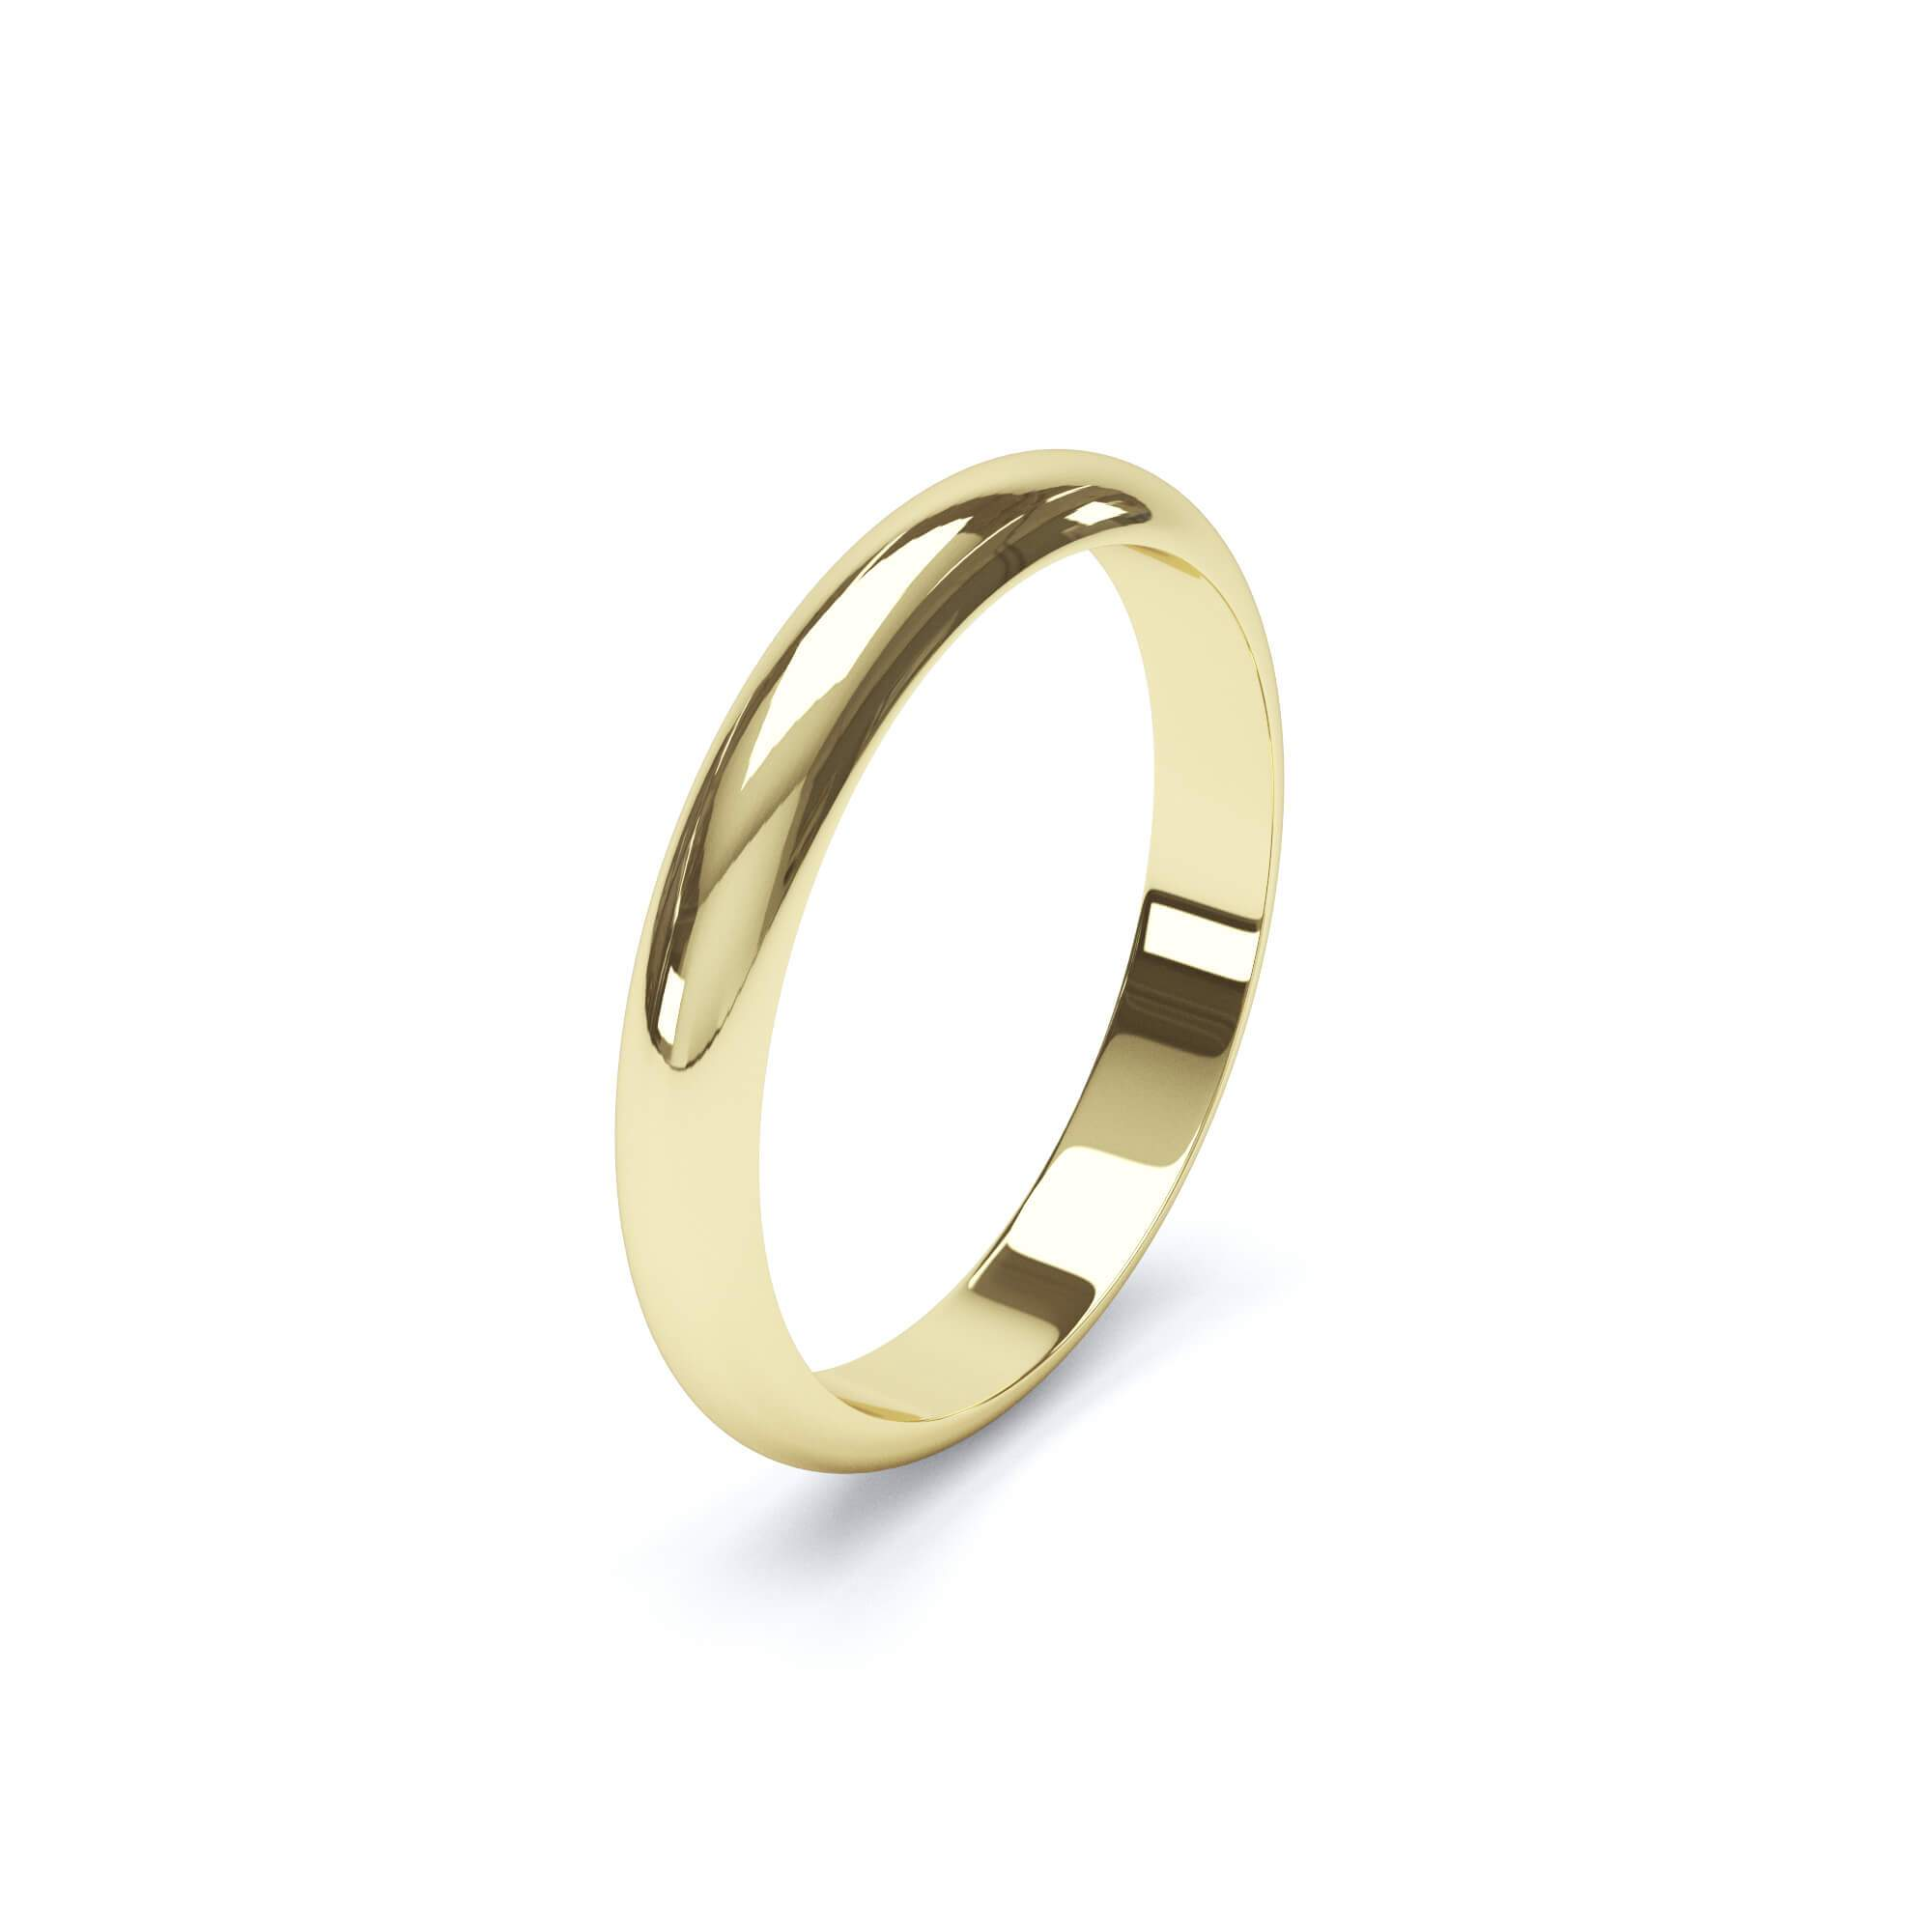 Women's Plain Wedding Band D Shape Profile 18k Yellow Gold Wedding Bands Lily Arkwright